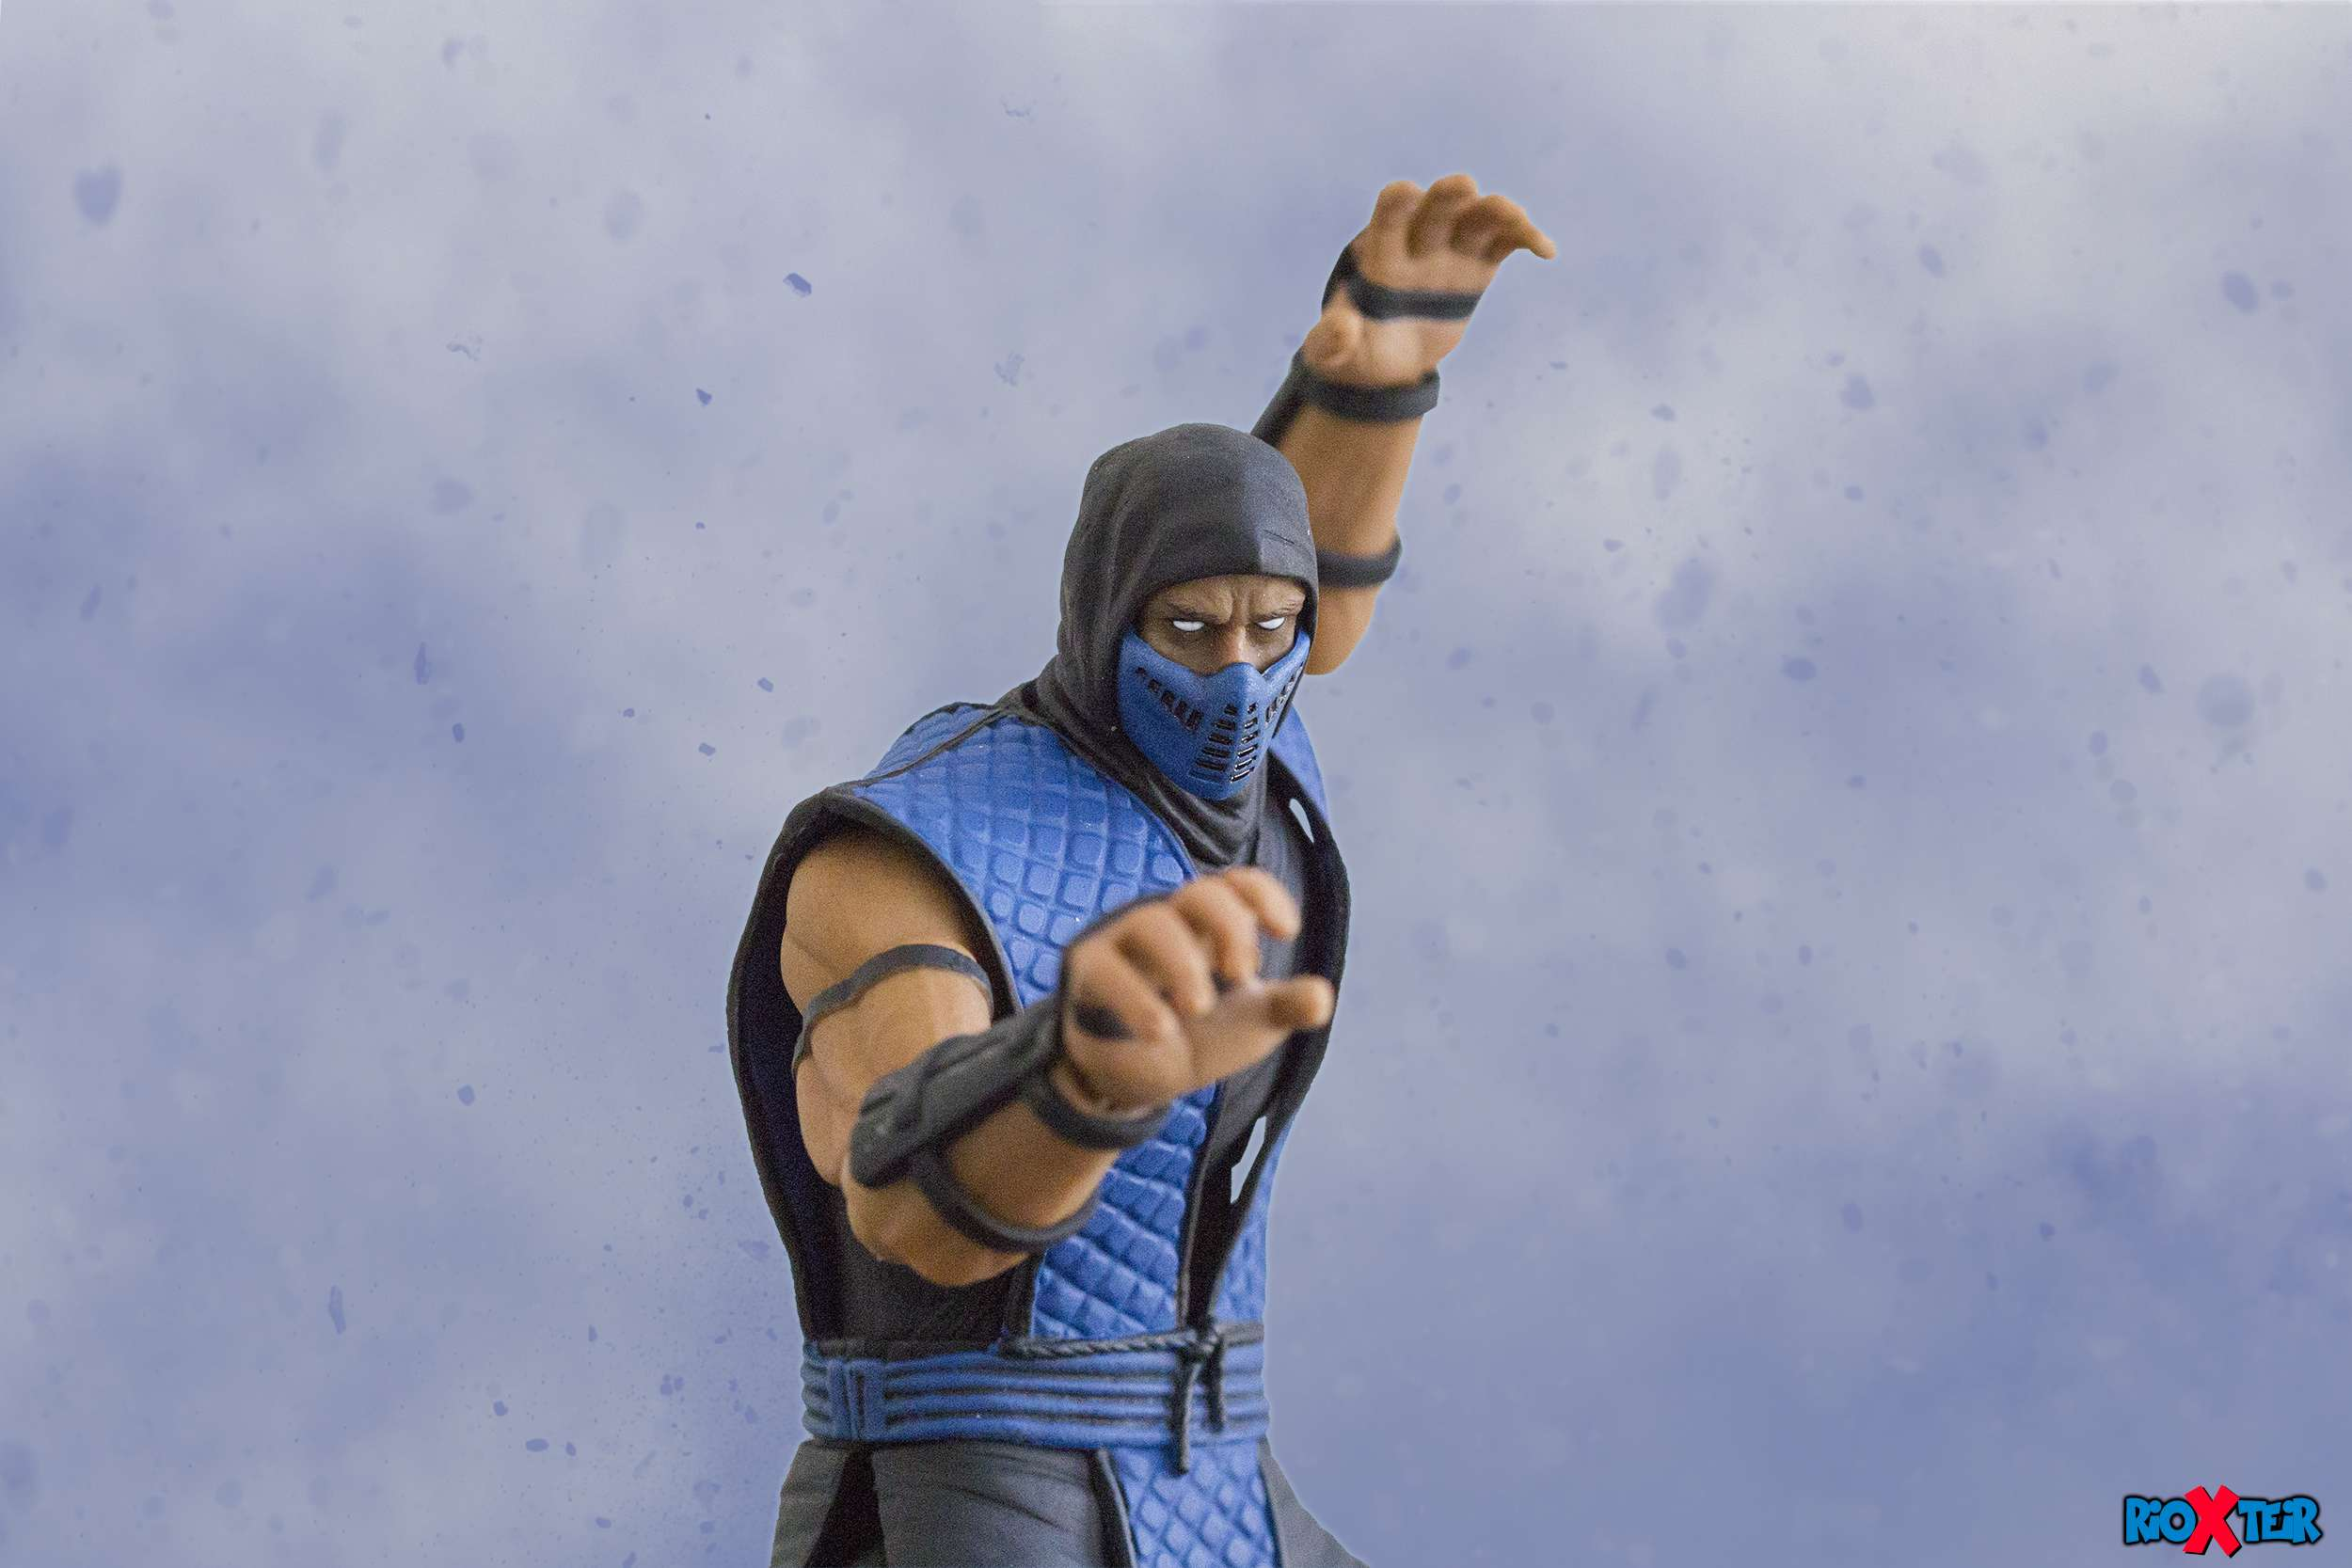 Storm Collectibles Mortal Kombat Series Subzero